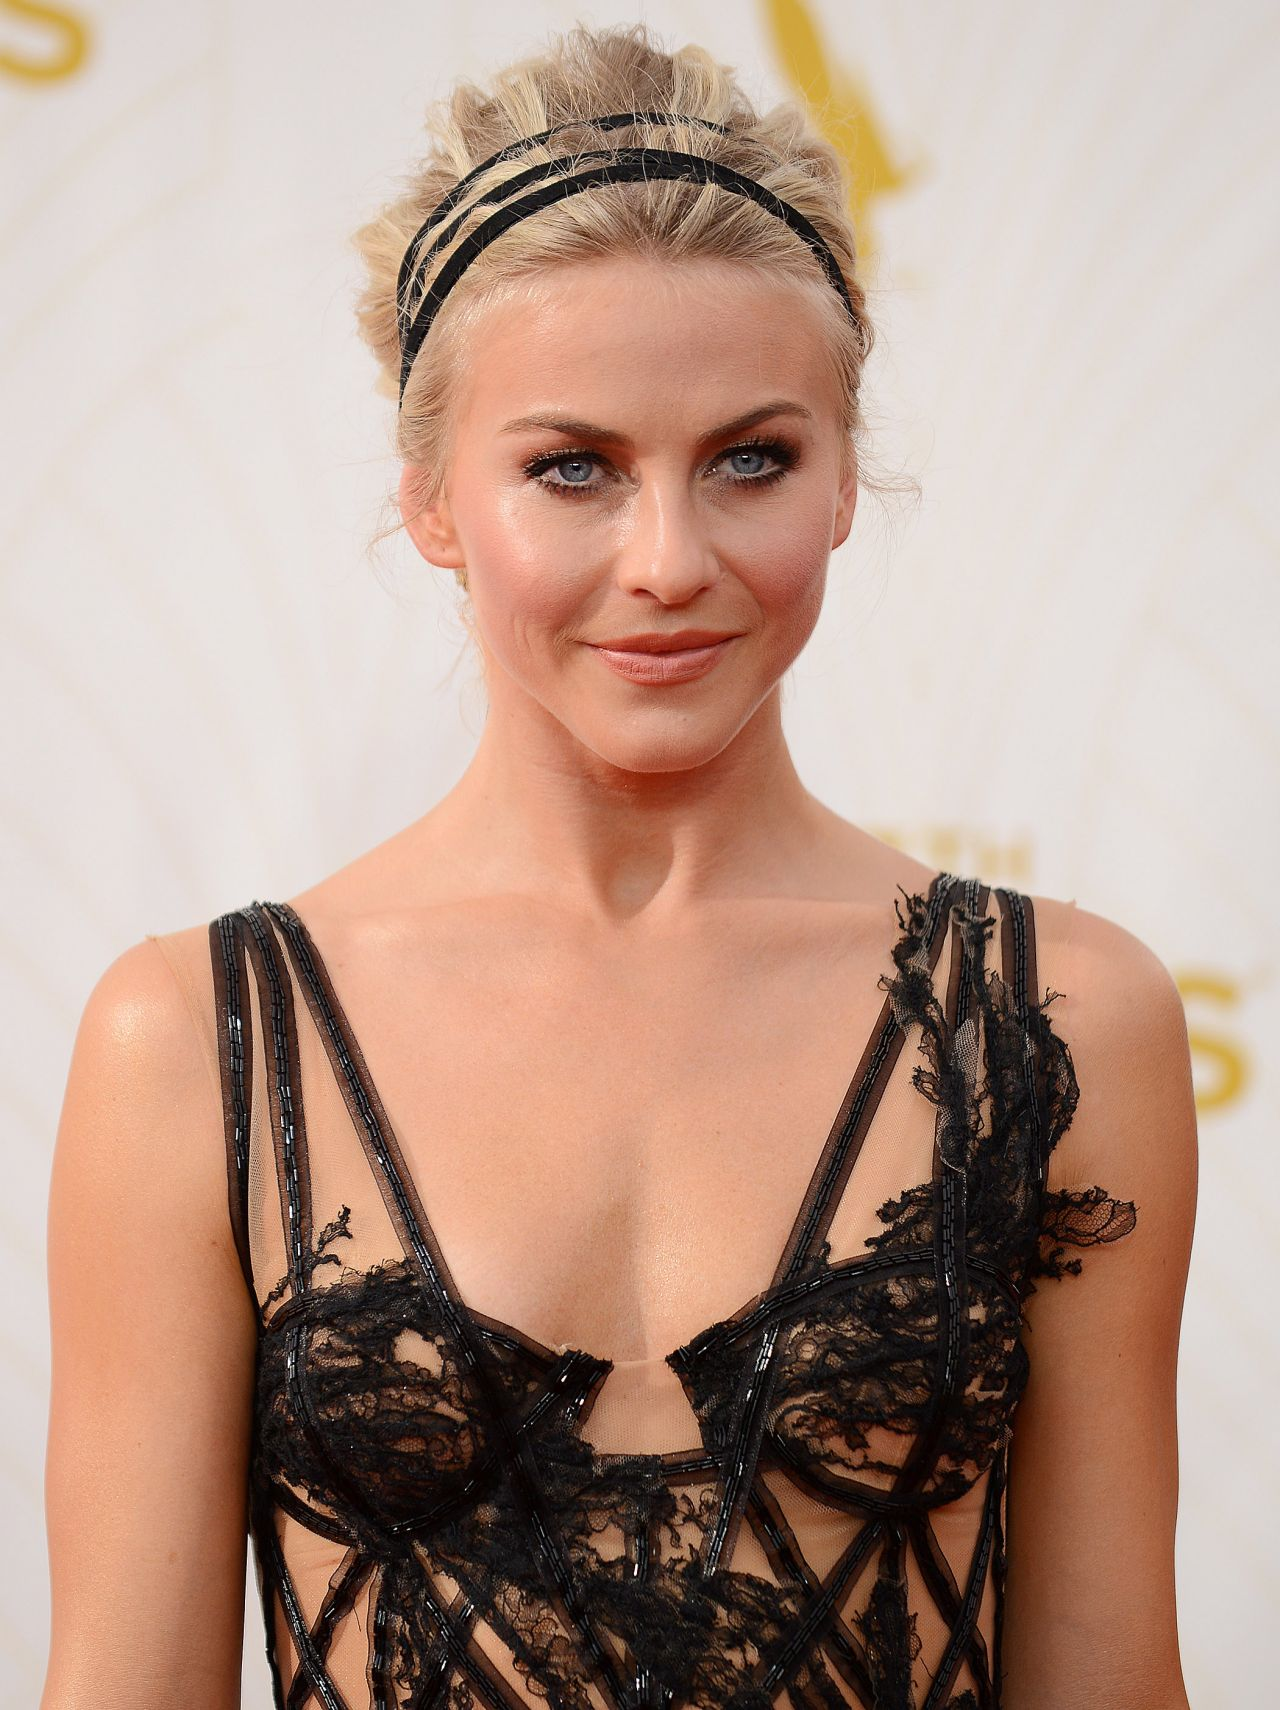 julianne-hough-on-red-carpet-2015-primetime-emmy-awards-in-los-angeles_18-1